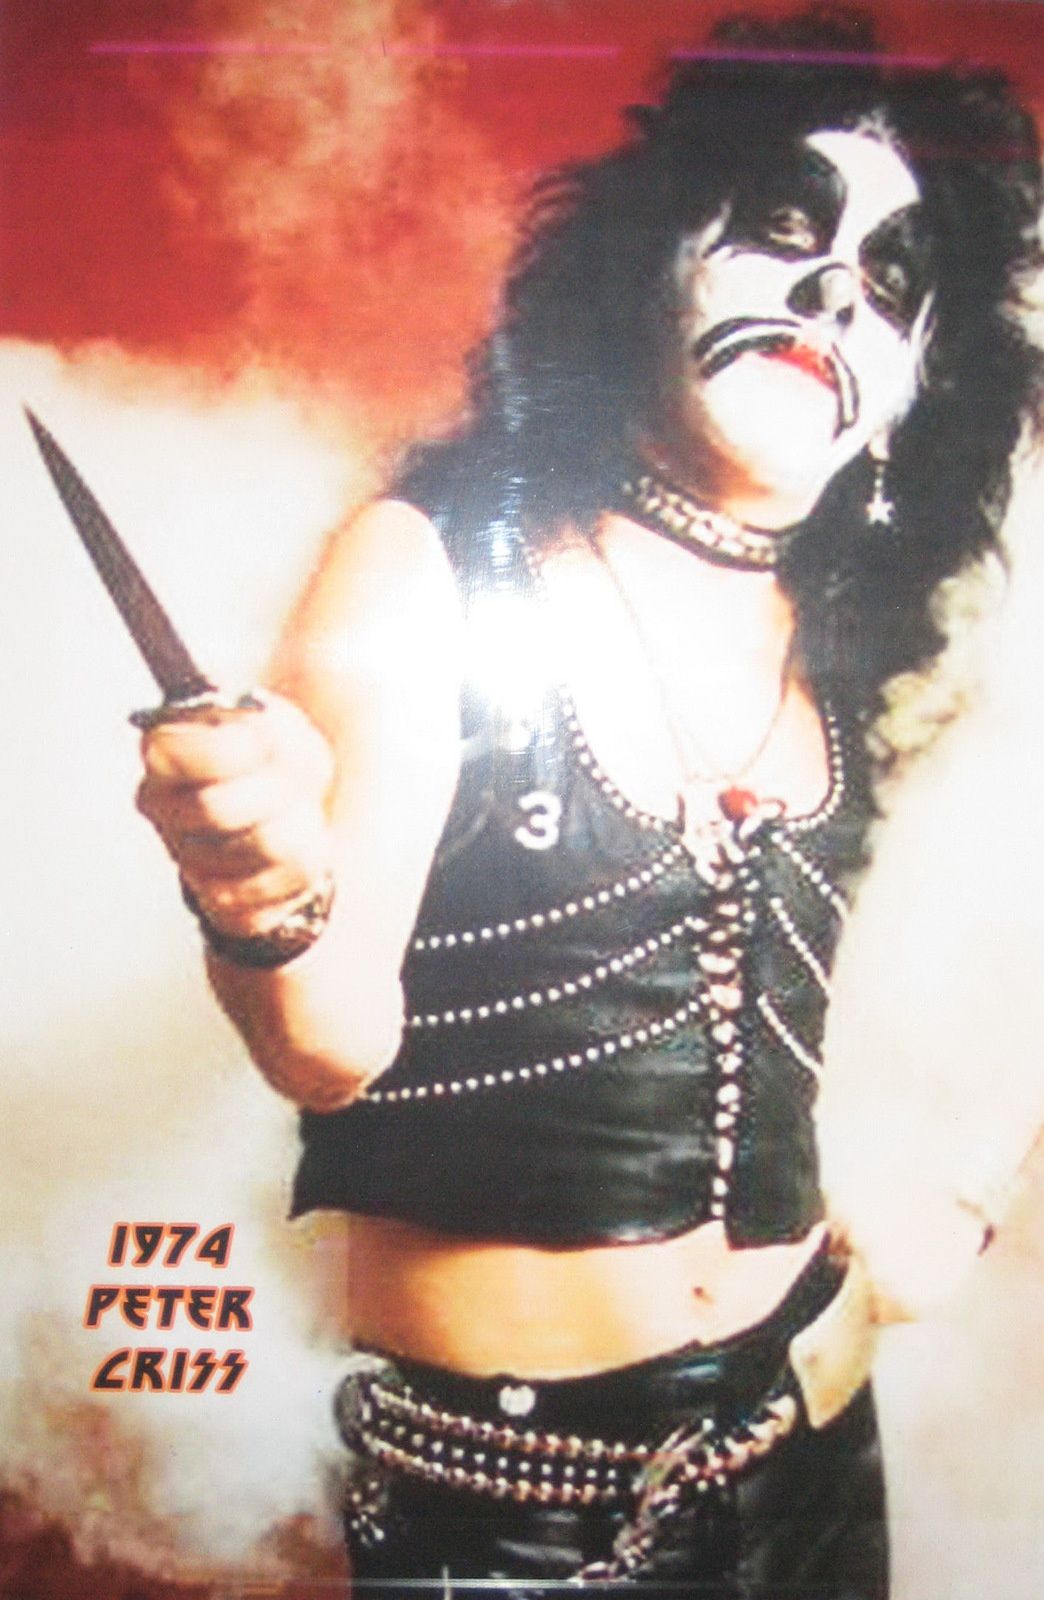 Peter Criss, KISS (1974)